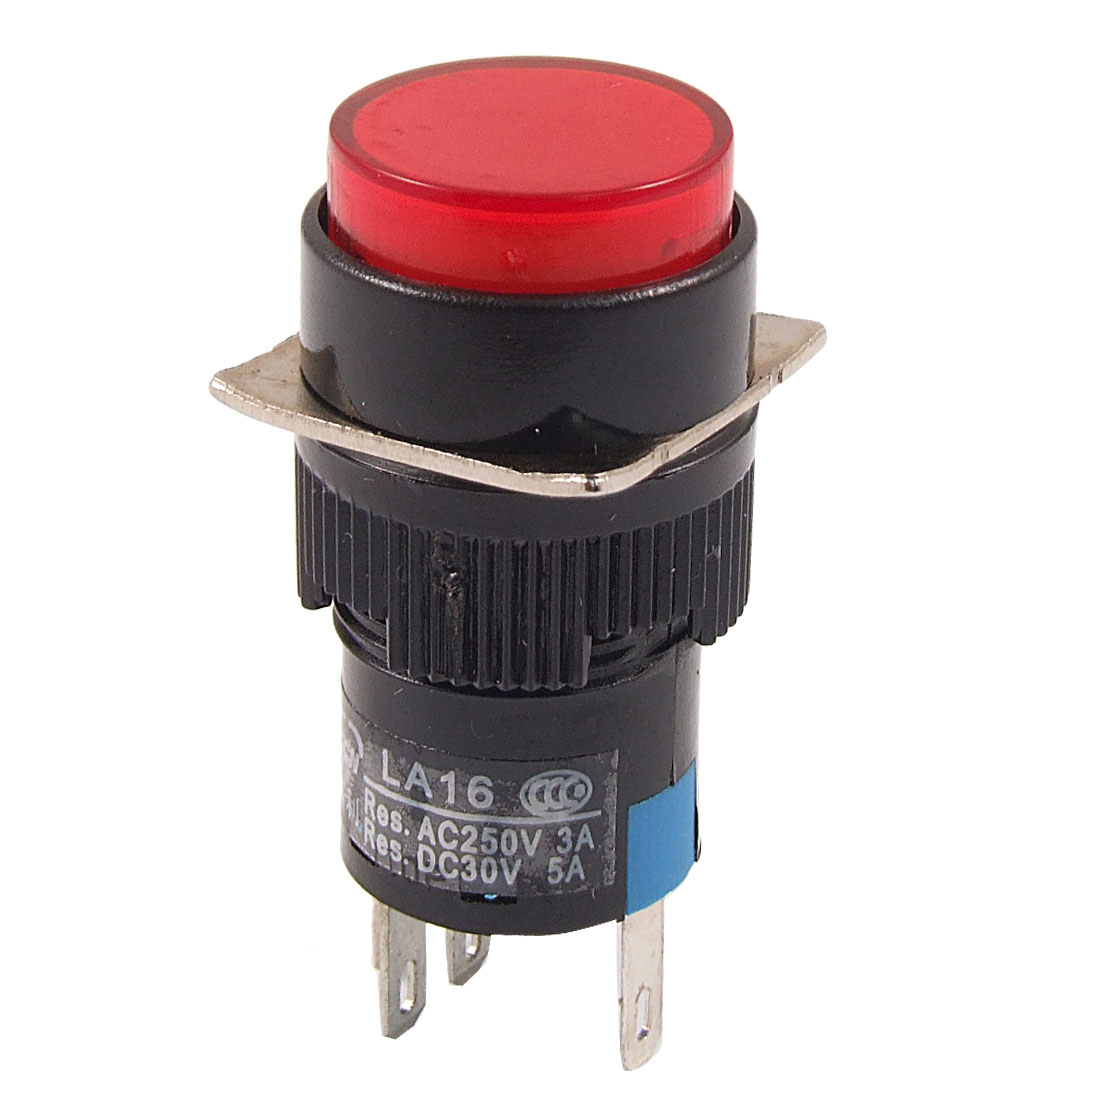 DC 24V Red Neon Light Momentary Push Button Switch AC 3A/250V